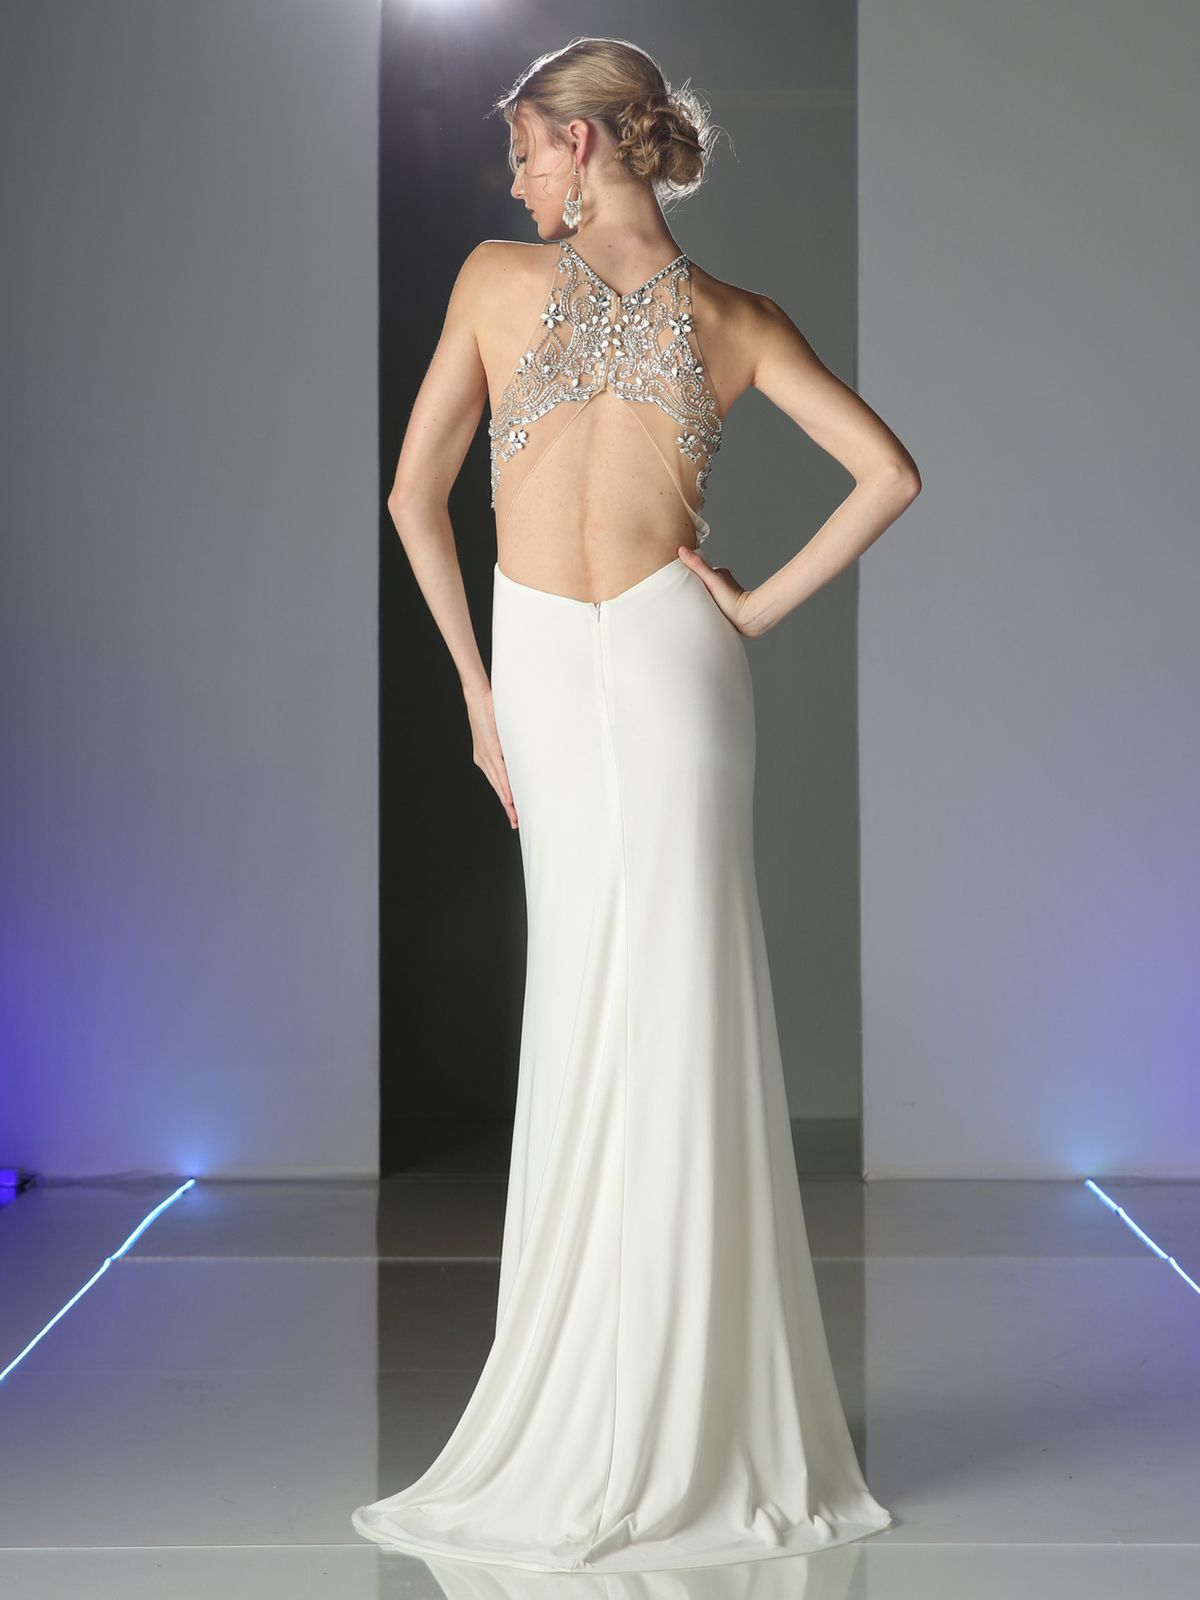 CD-PC911 Jeweled Strap Halter Top Evening Dress - Off White, Back ...